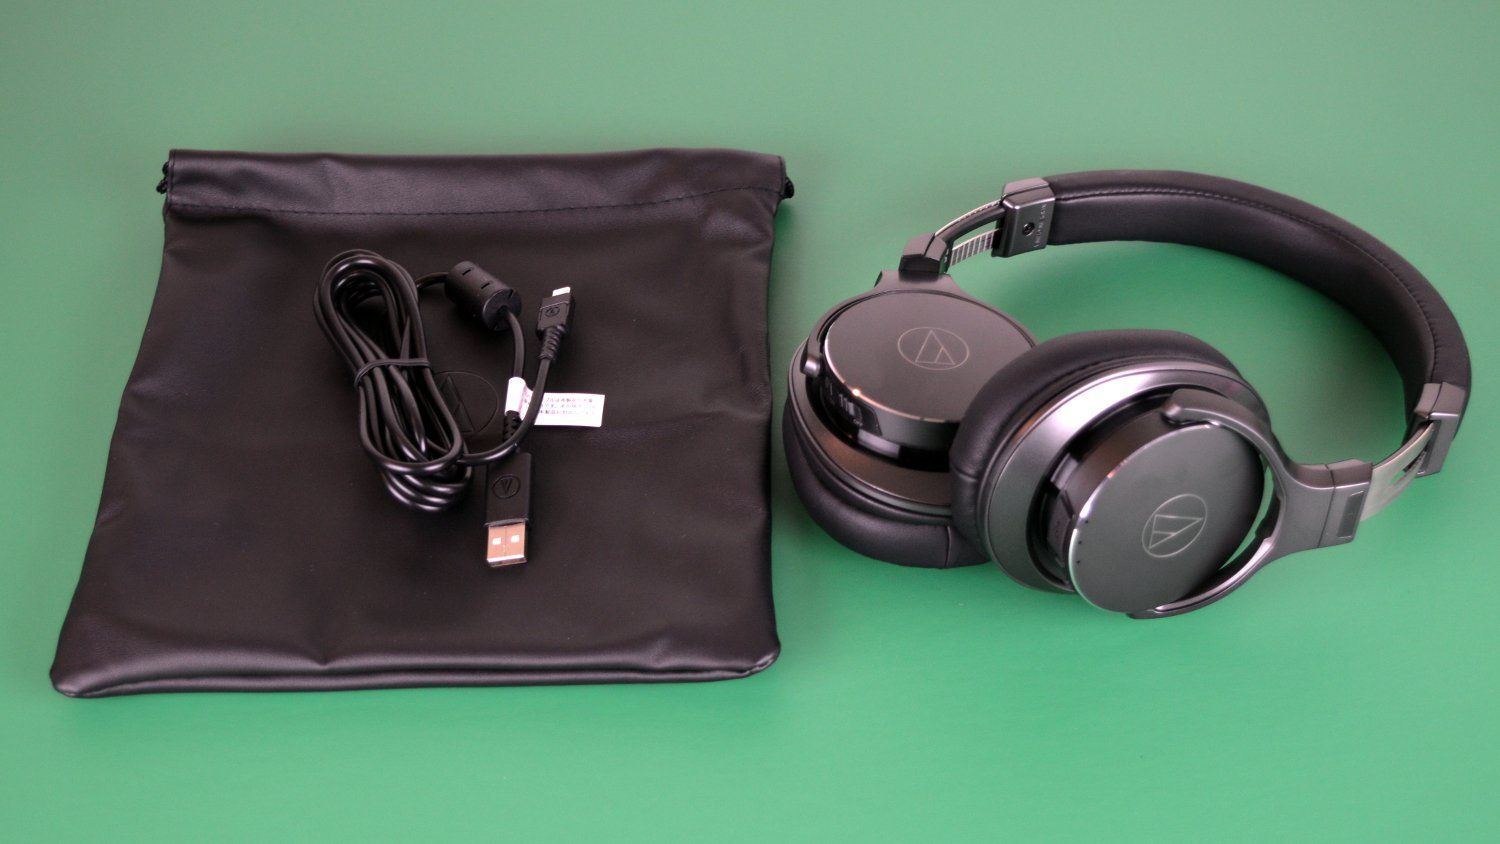 Audio Technica Has Long Been An Excellent Choice For Those Looking For A Detailed Sound Quality Now The C Wireless Headphones Review Audio Technica Headphones